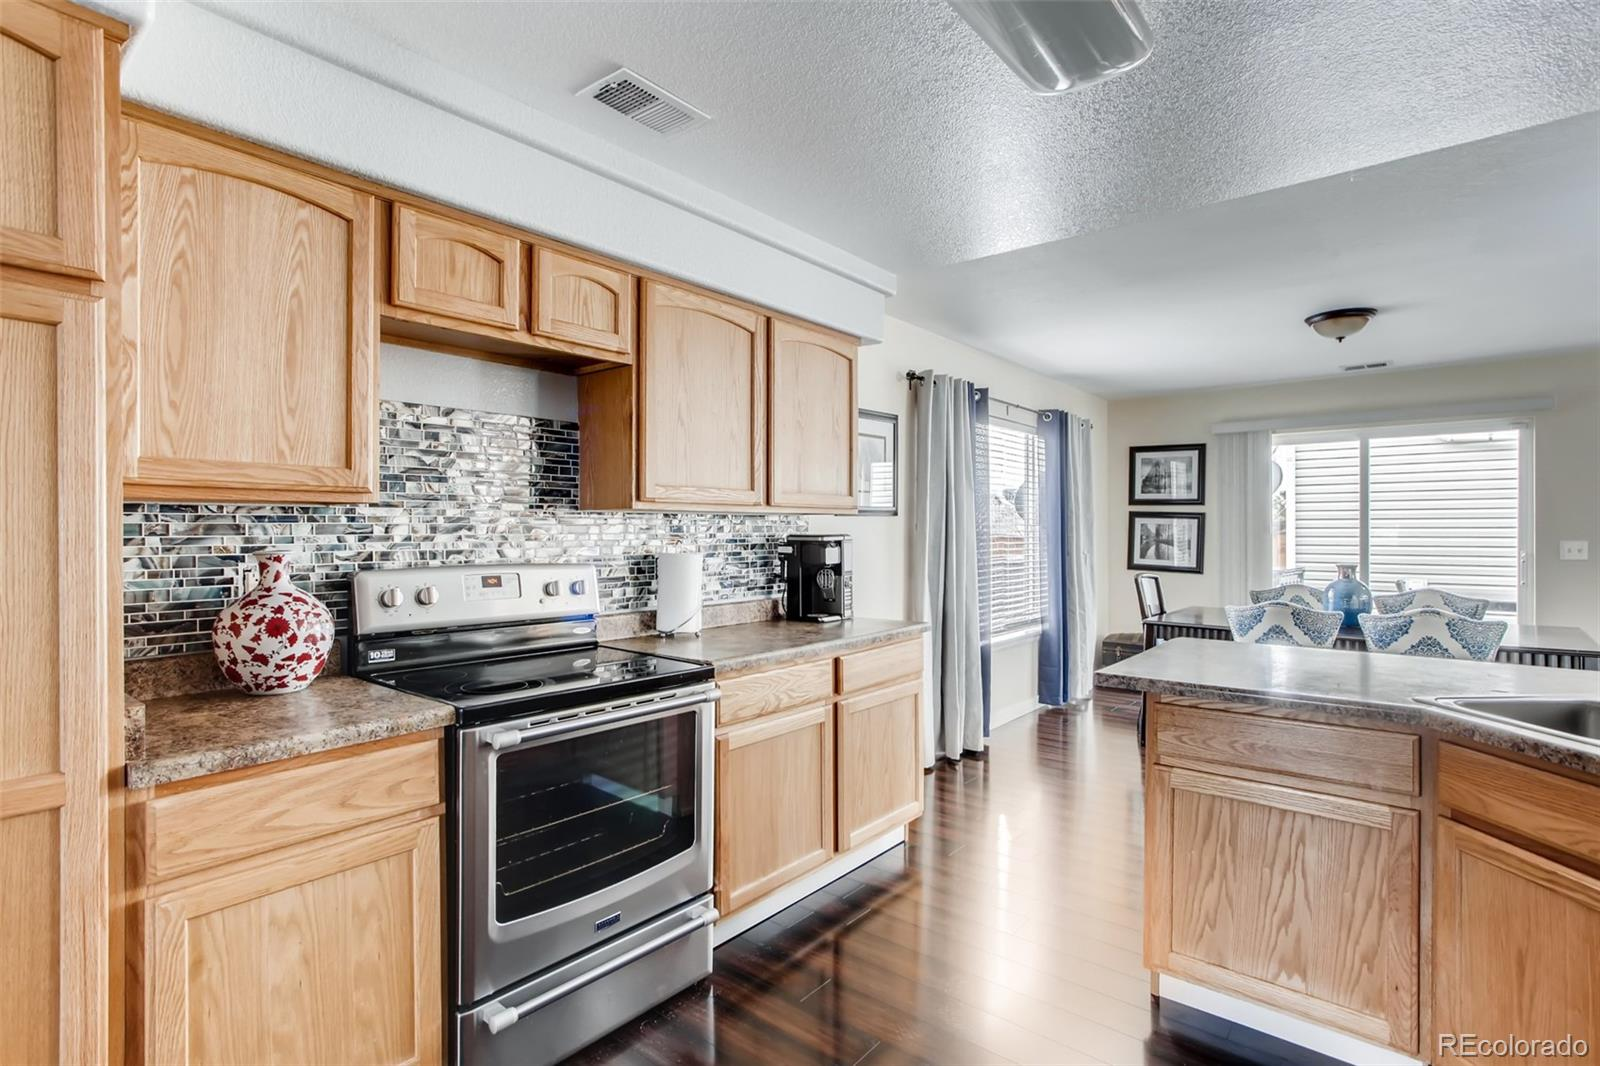 MLS# 3131128 - 12 - 20000 Mitchell Place #64, Denver, CO 80249